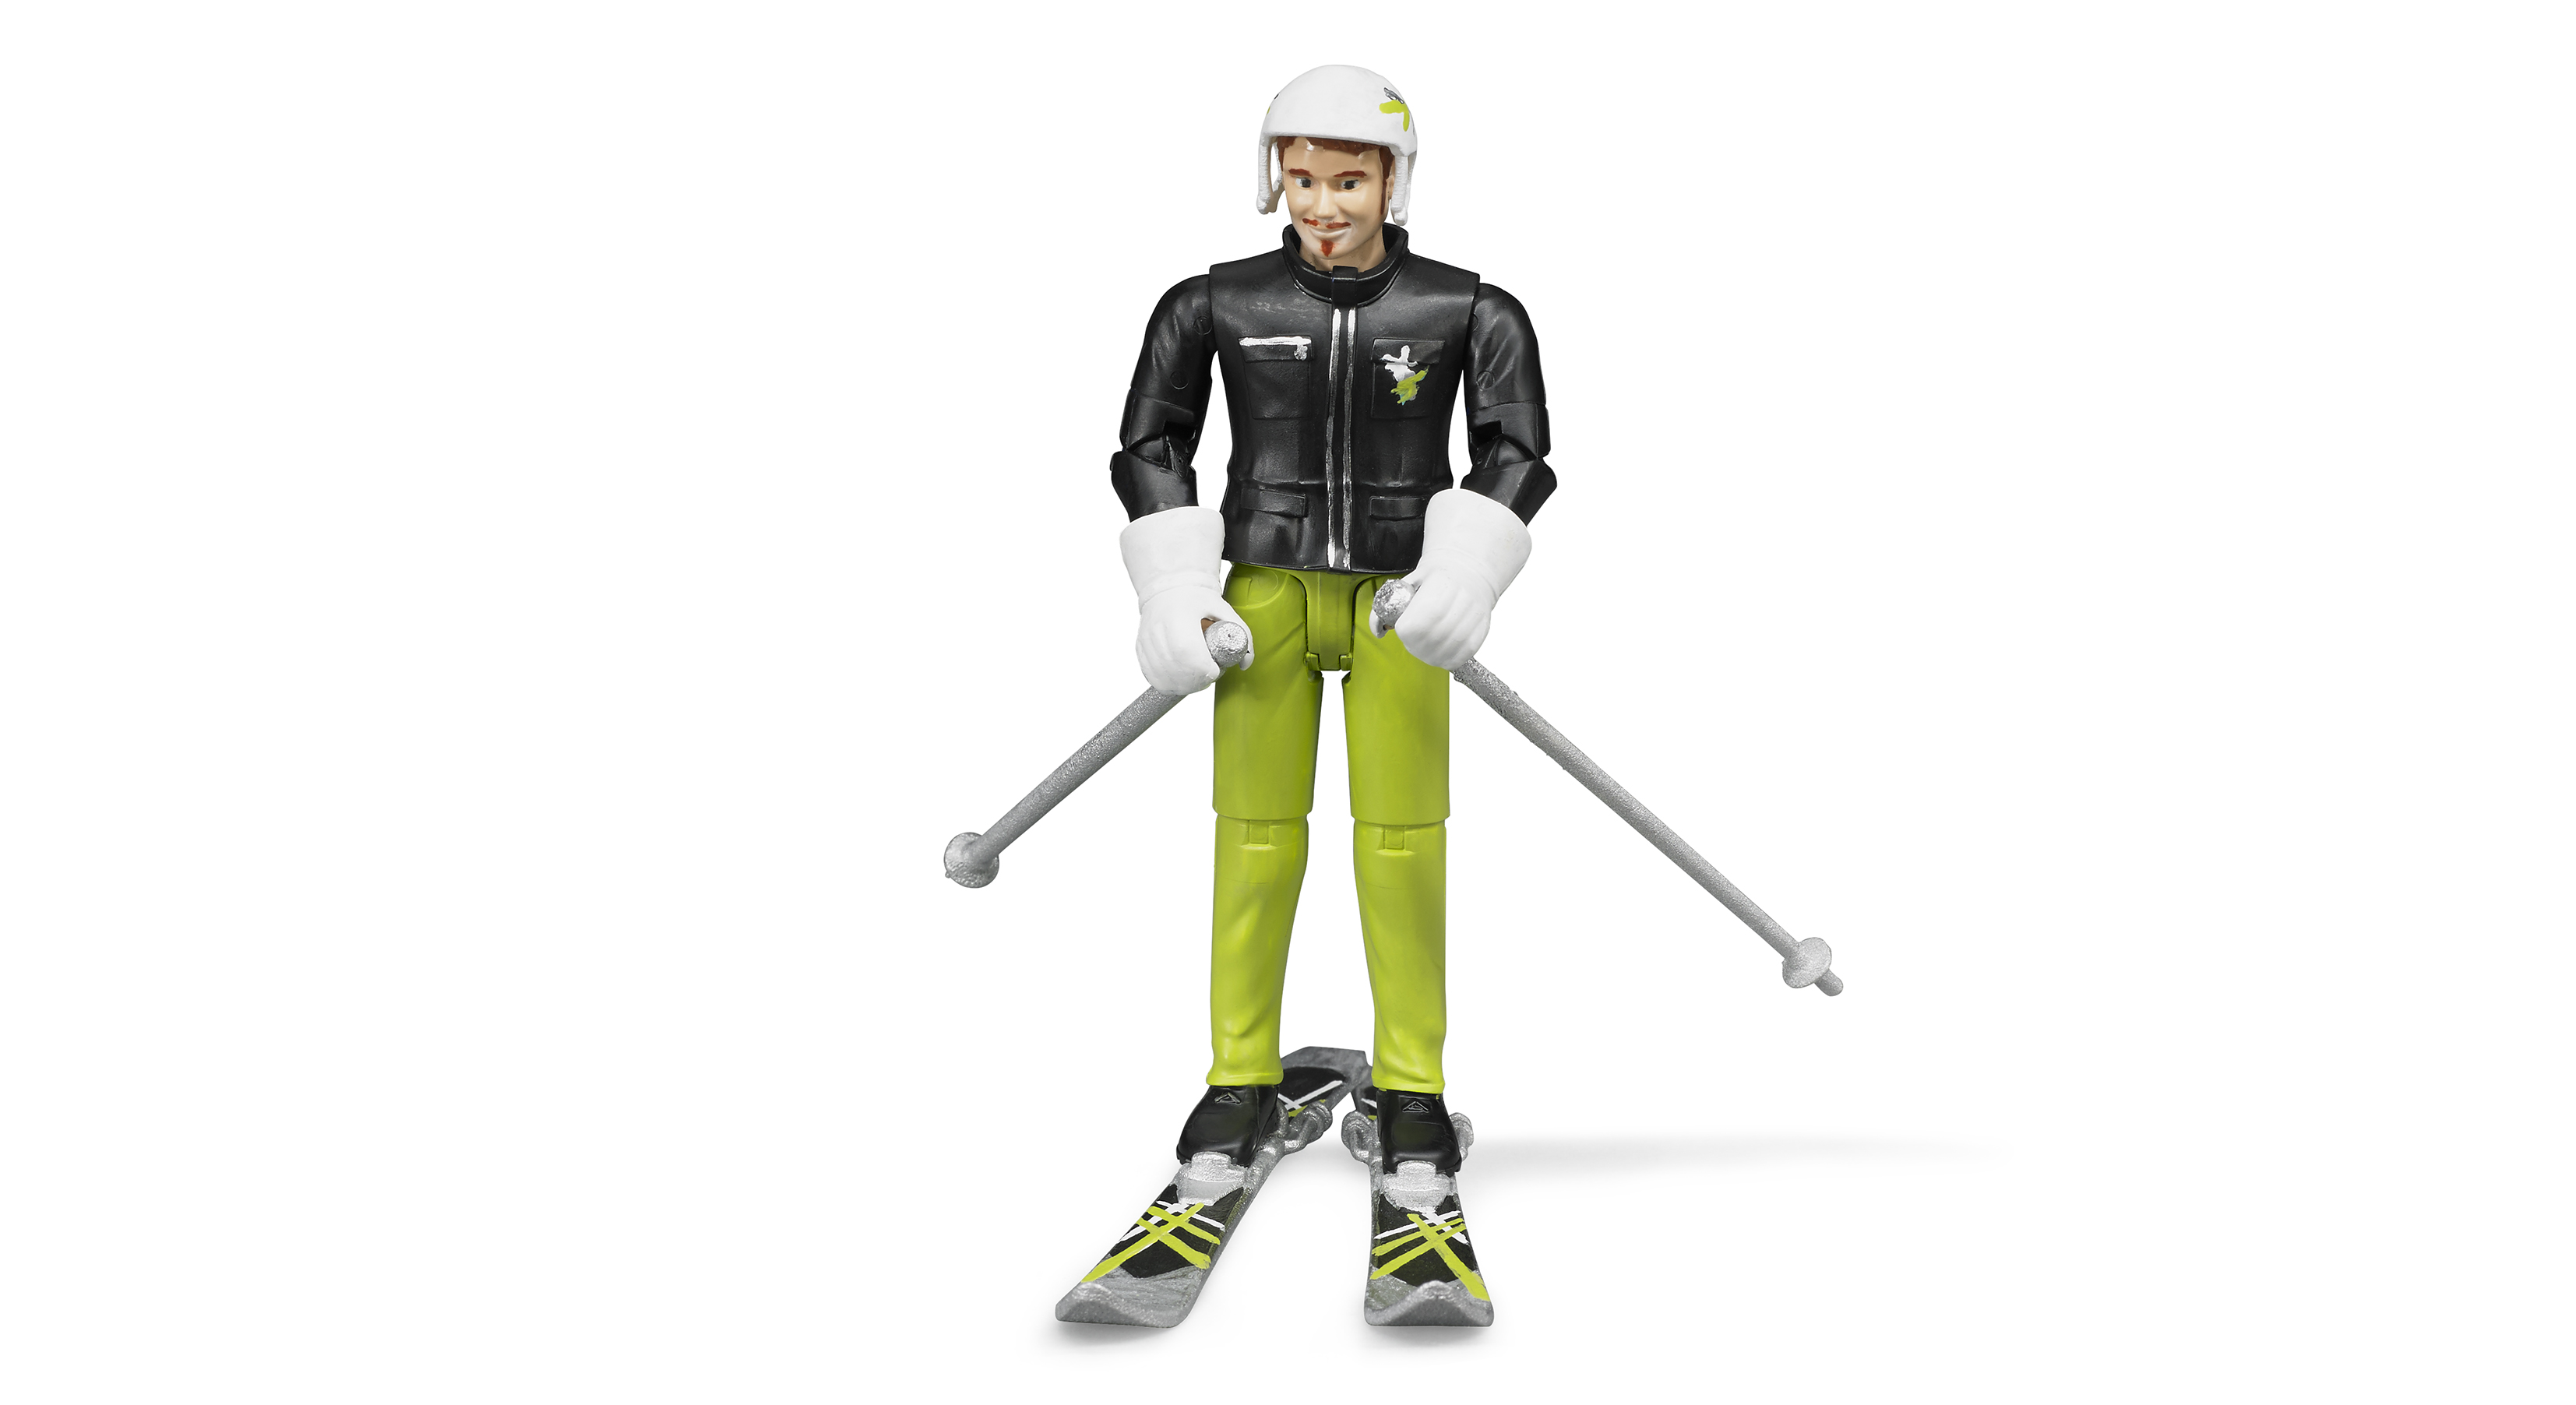 Bruder #60040 Skier with Accessories - New Factory Sealed